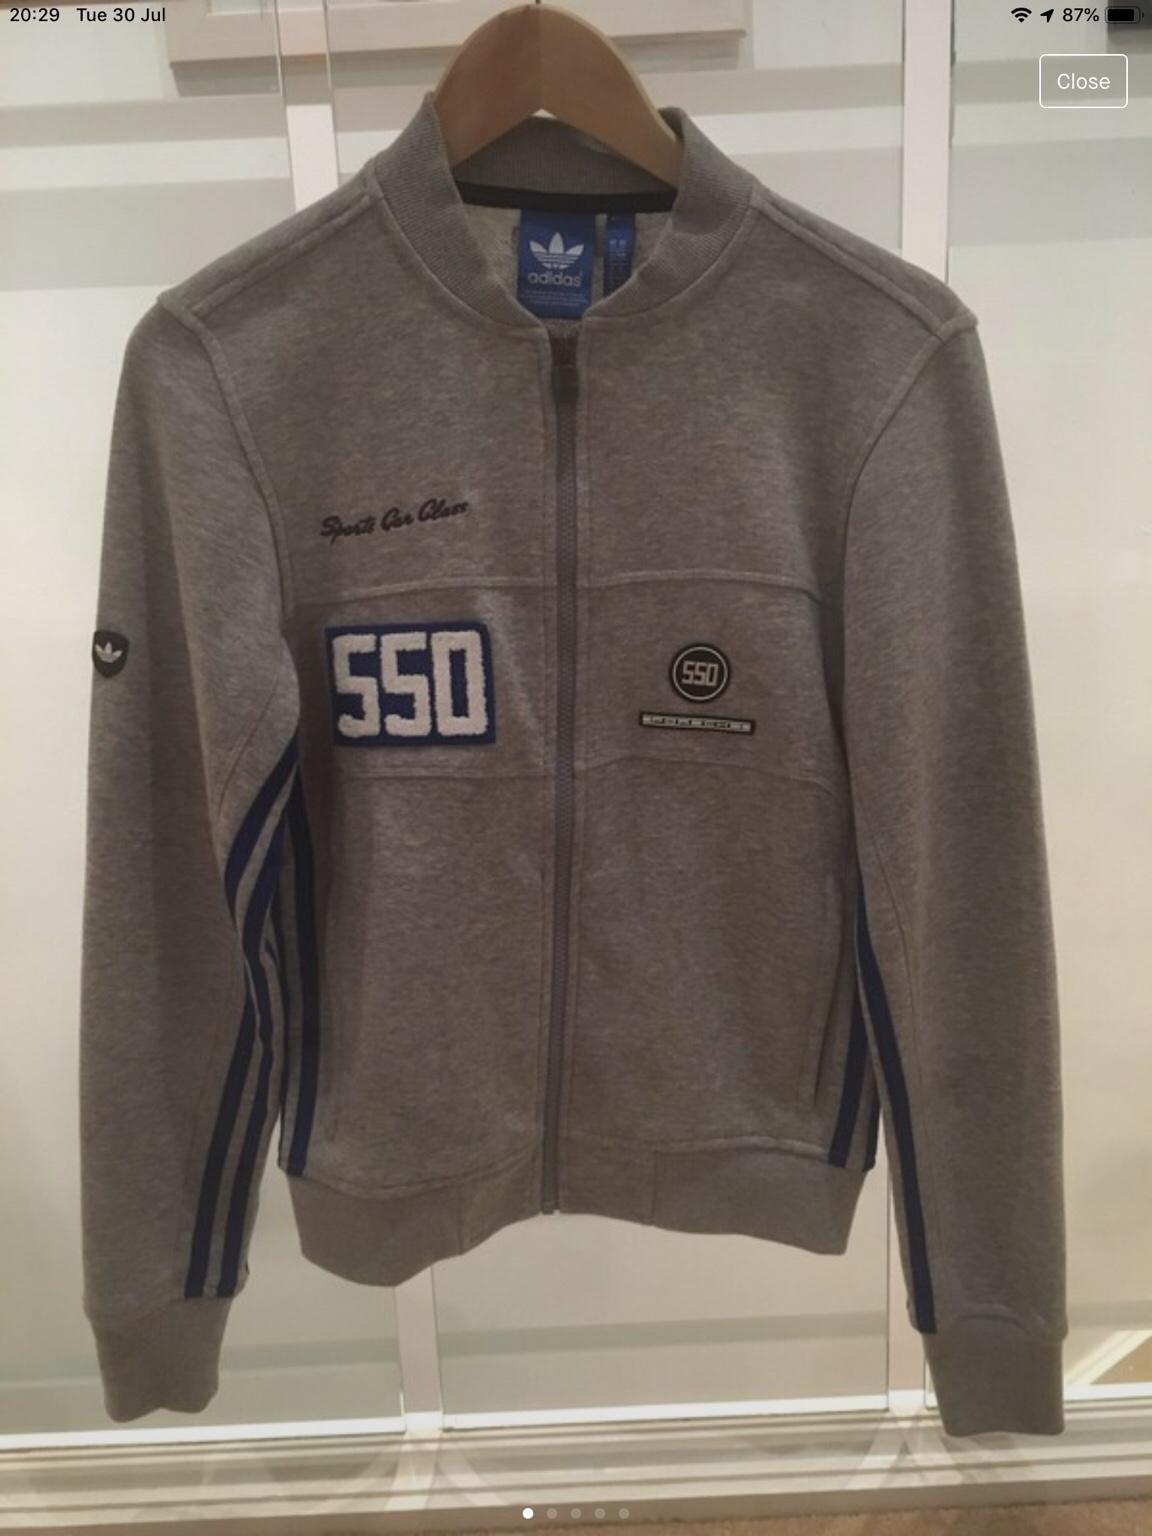 Adidas Adidas Porsche 550 Harrington Navy Blue Jacket Size M